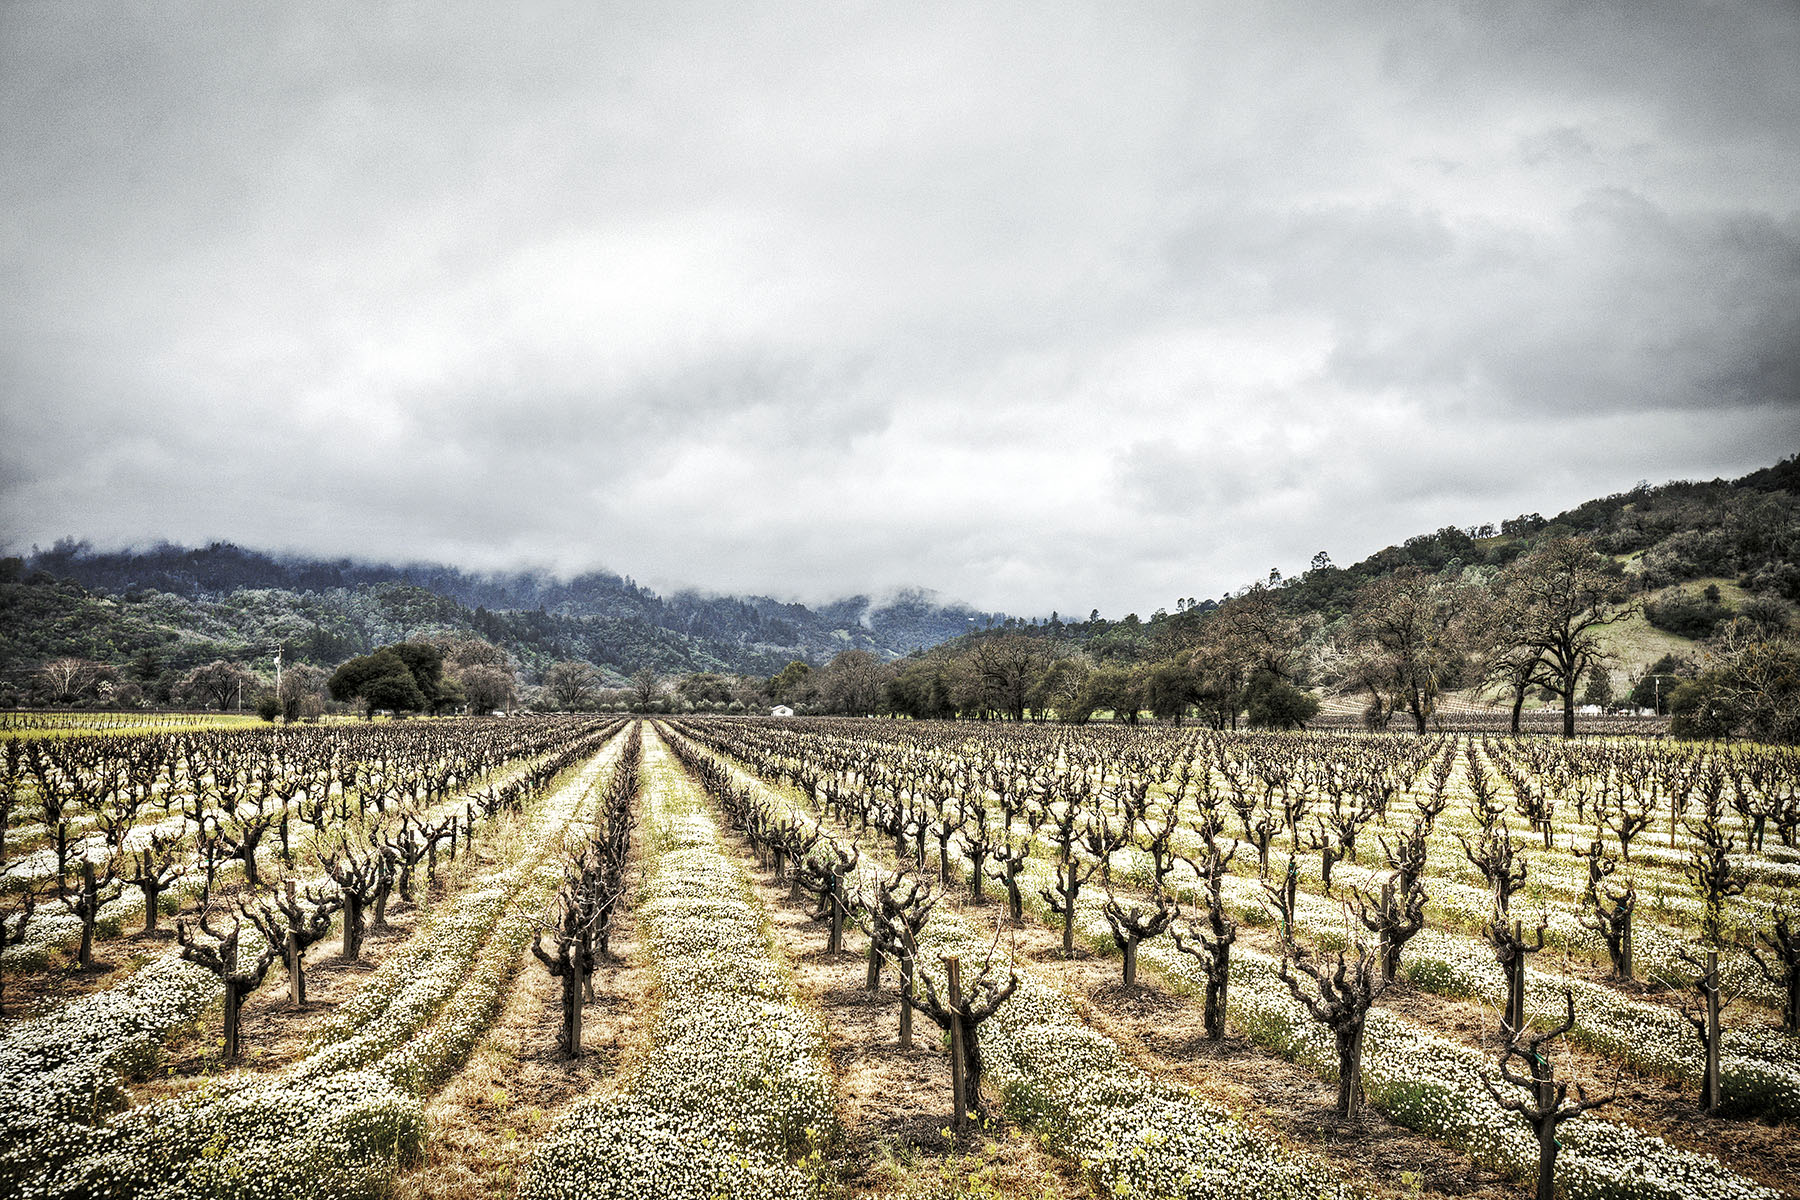 Napa Wine Country Grape Vines | Dovis Bird Agency Photography